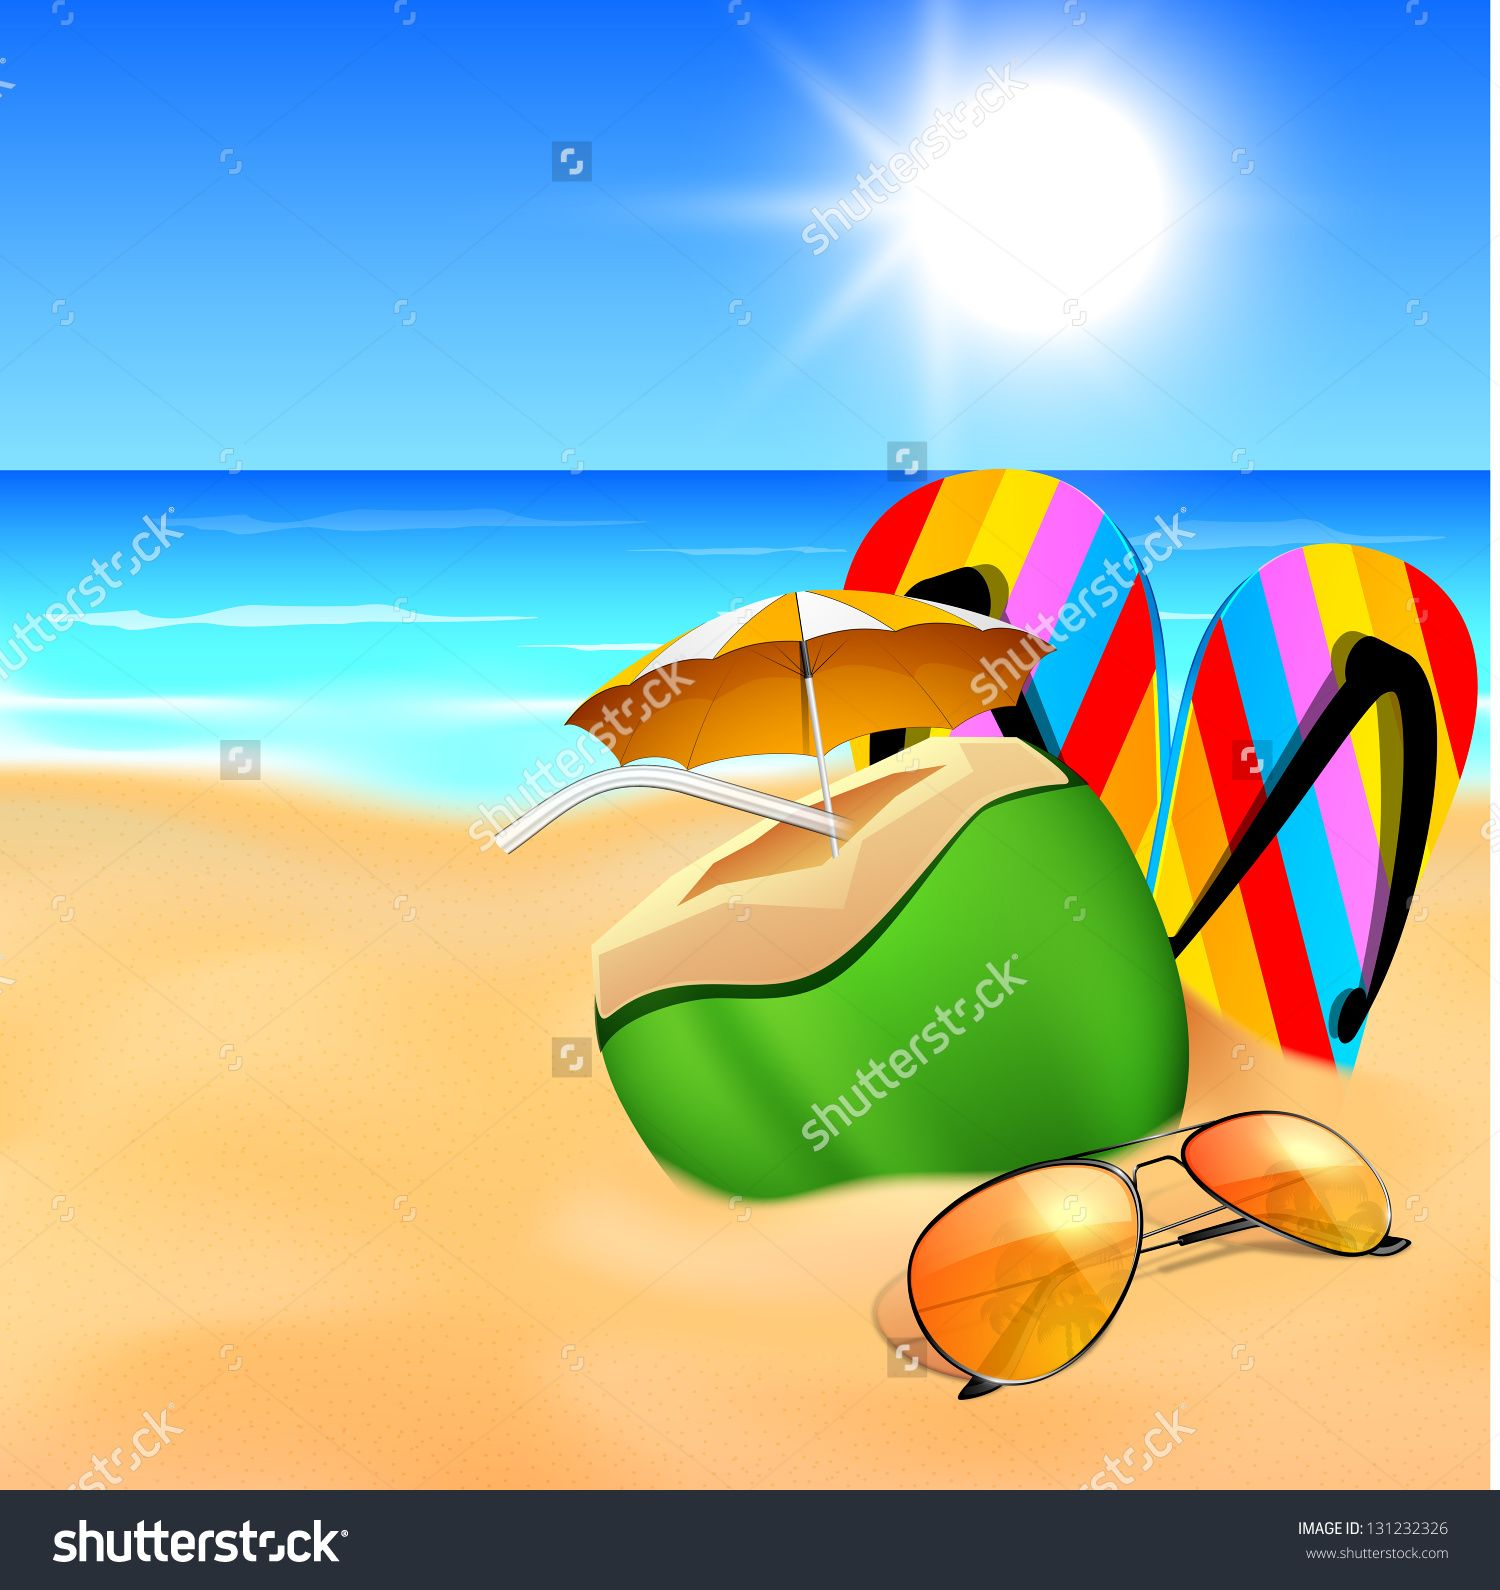 627a20ddf50c Evening Background With Sunglasses, Flip Flops And Refreshment At Sea Beach.  Stock Vector Illustration 131232326 : Shutterstock